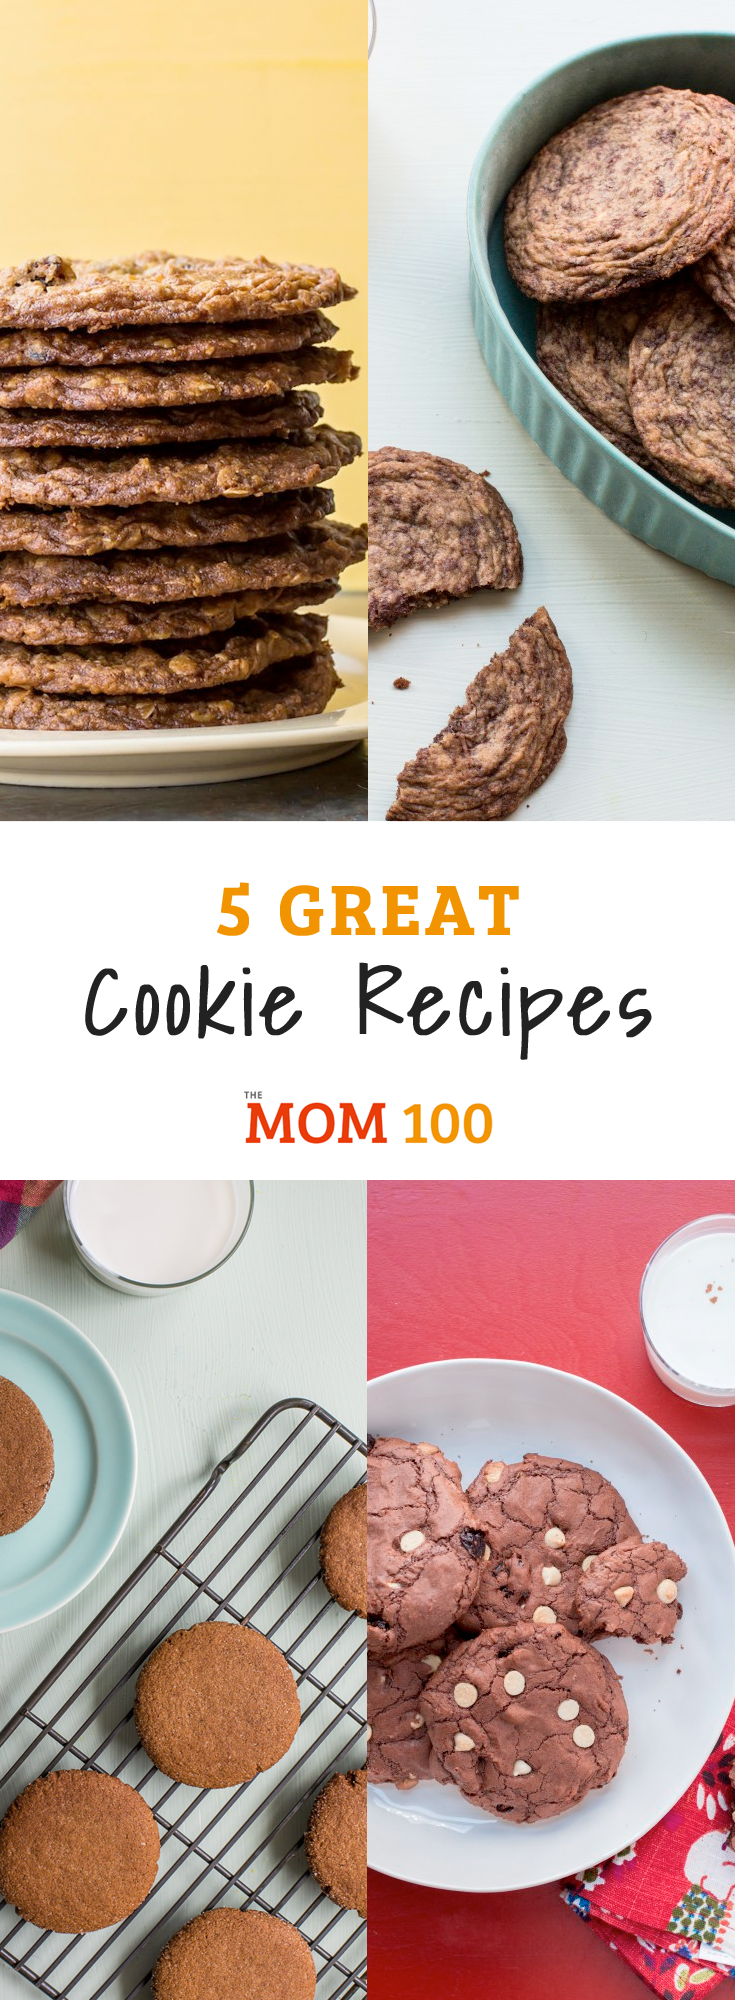 Here are 5 Great Cookie Recipes for the Holidays. These cookies aren't always the most polished or ornate, but they are the most delicious.